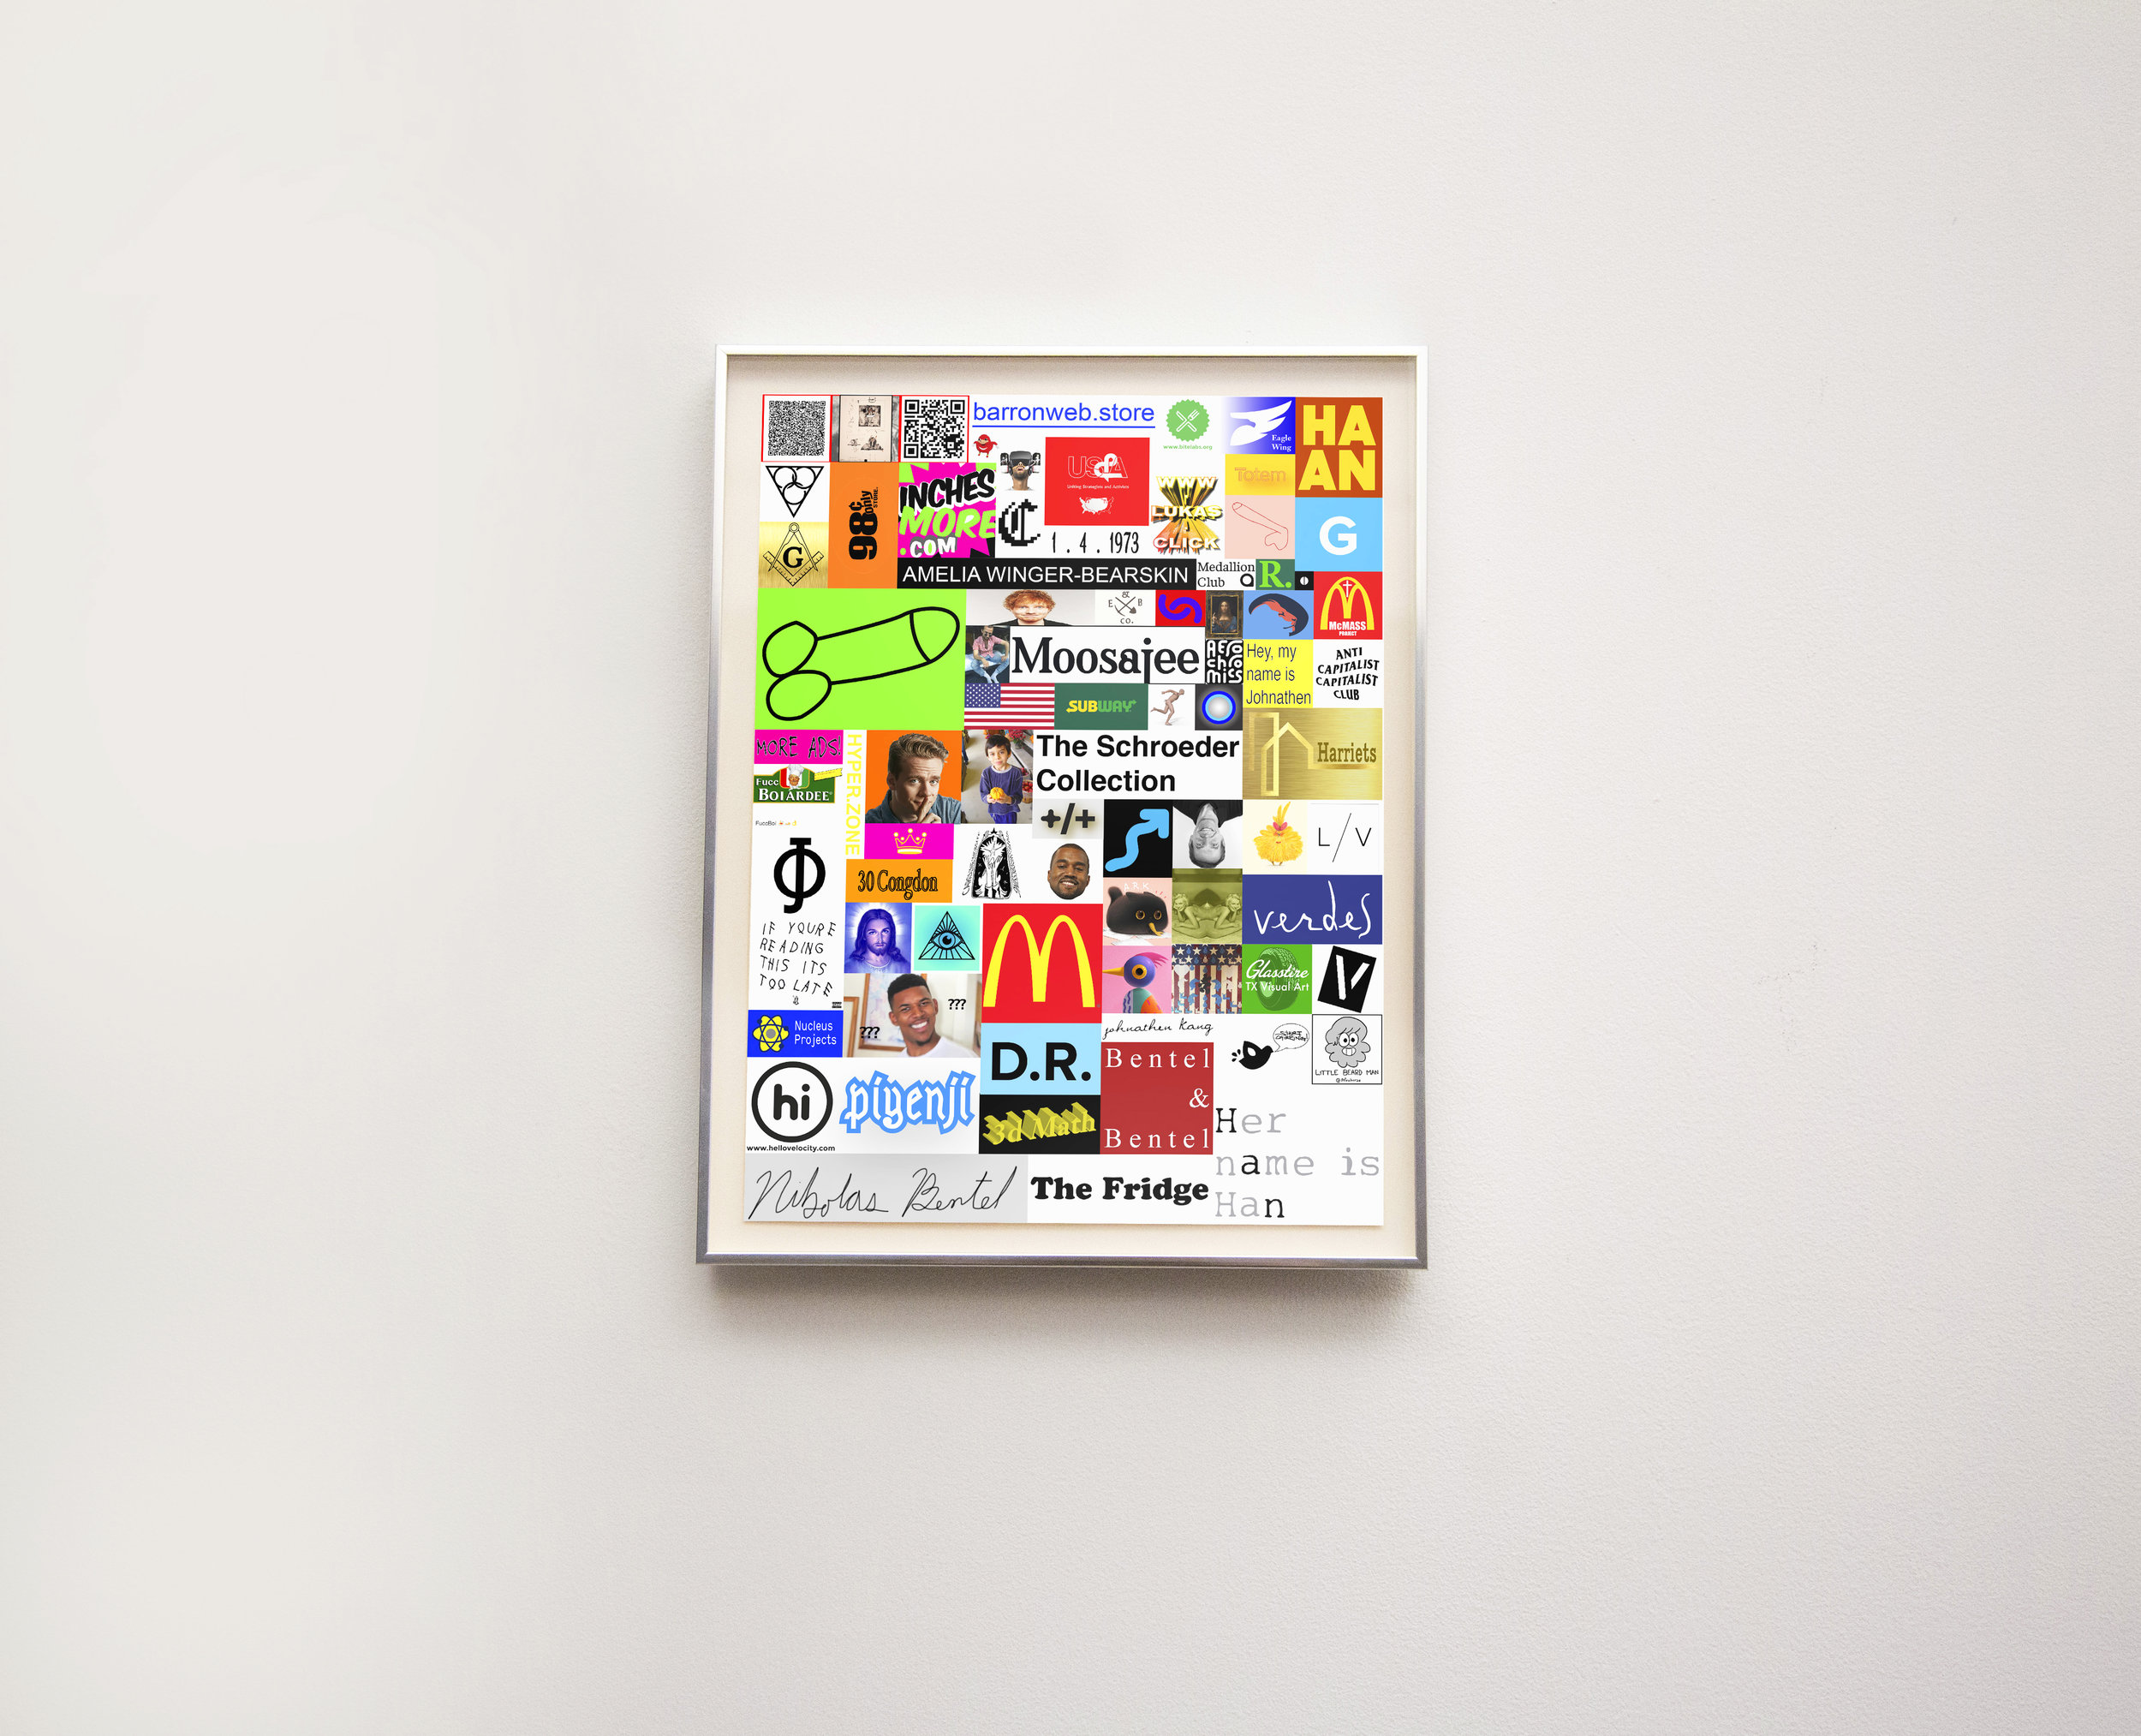 The_Erased_Rauschenberg_Completed.jpg